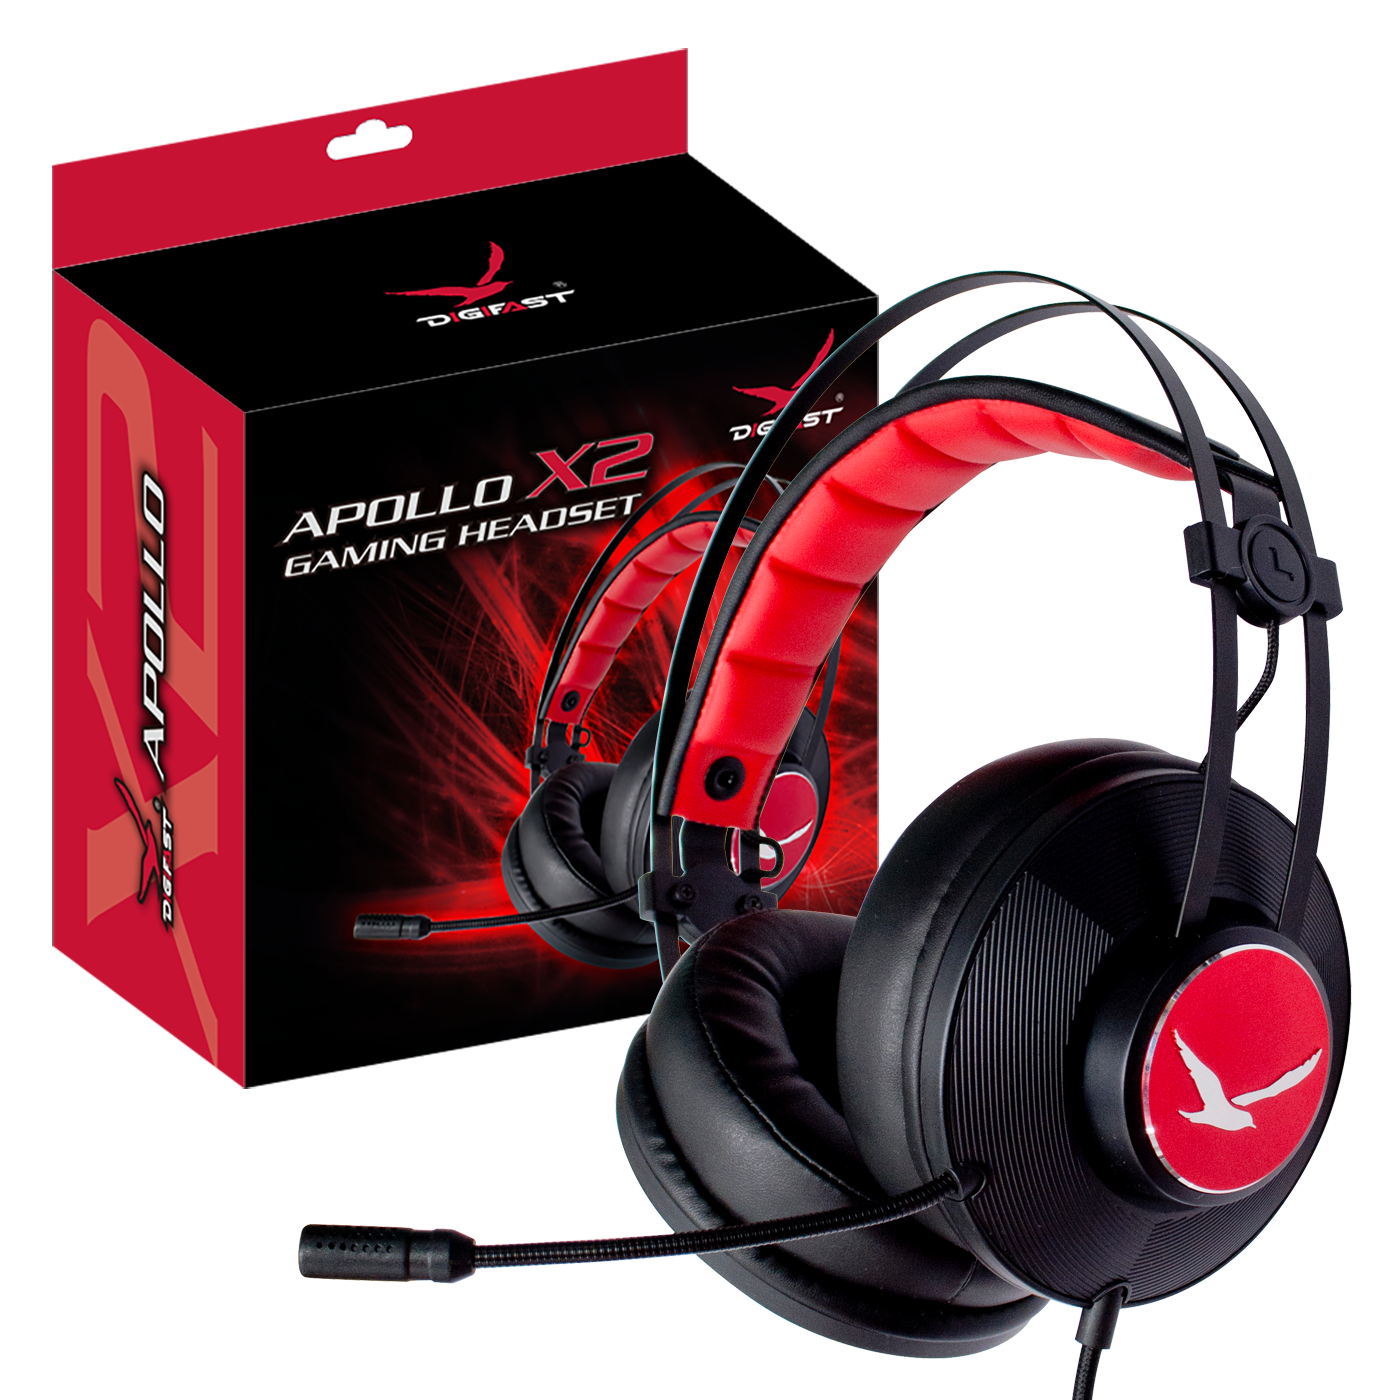 Digifast Apollo X2 headset with noise-canceling microphone with packaging